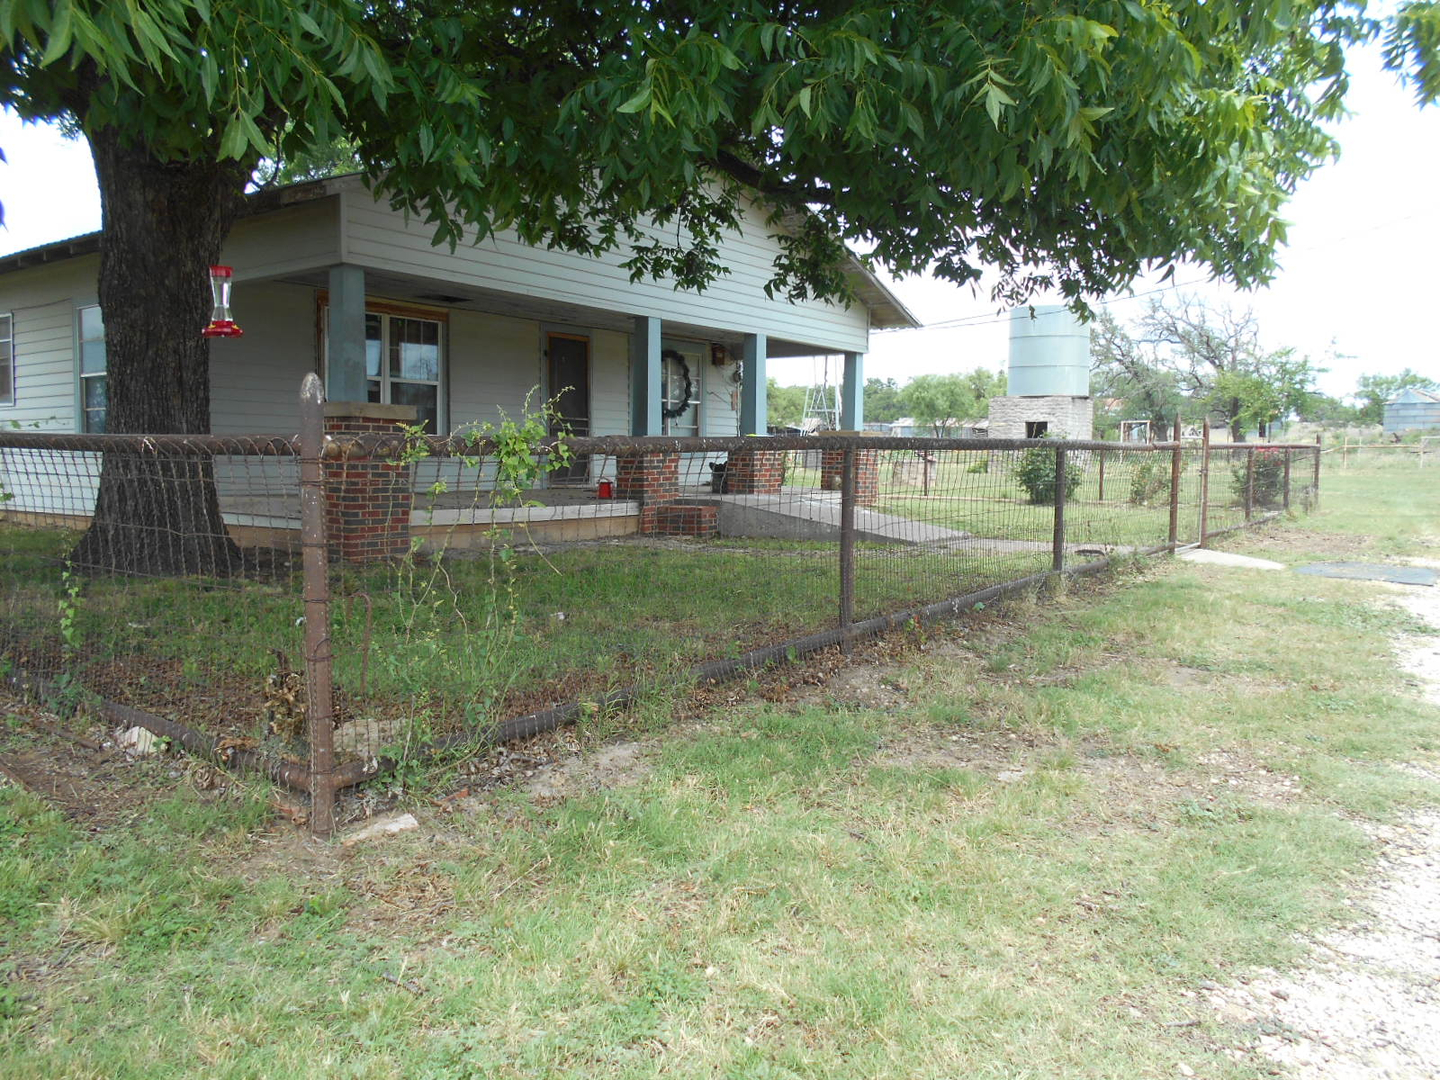 Specializing in Central Texas ranch & hunting properties